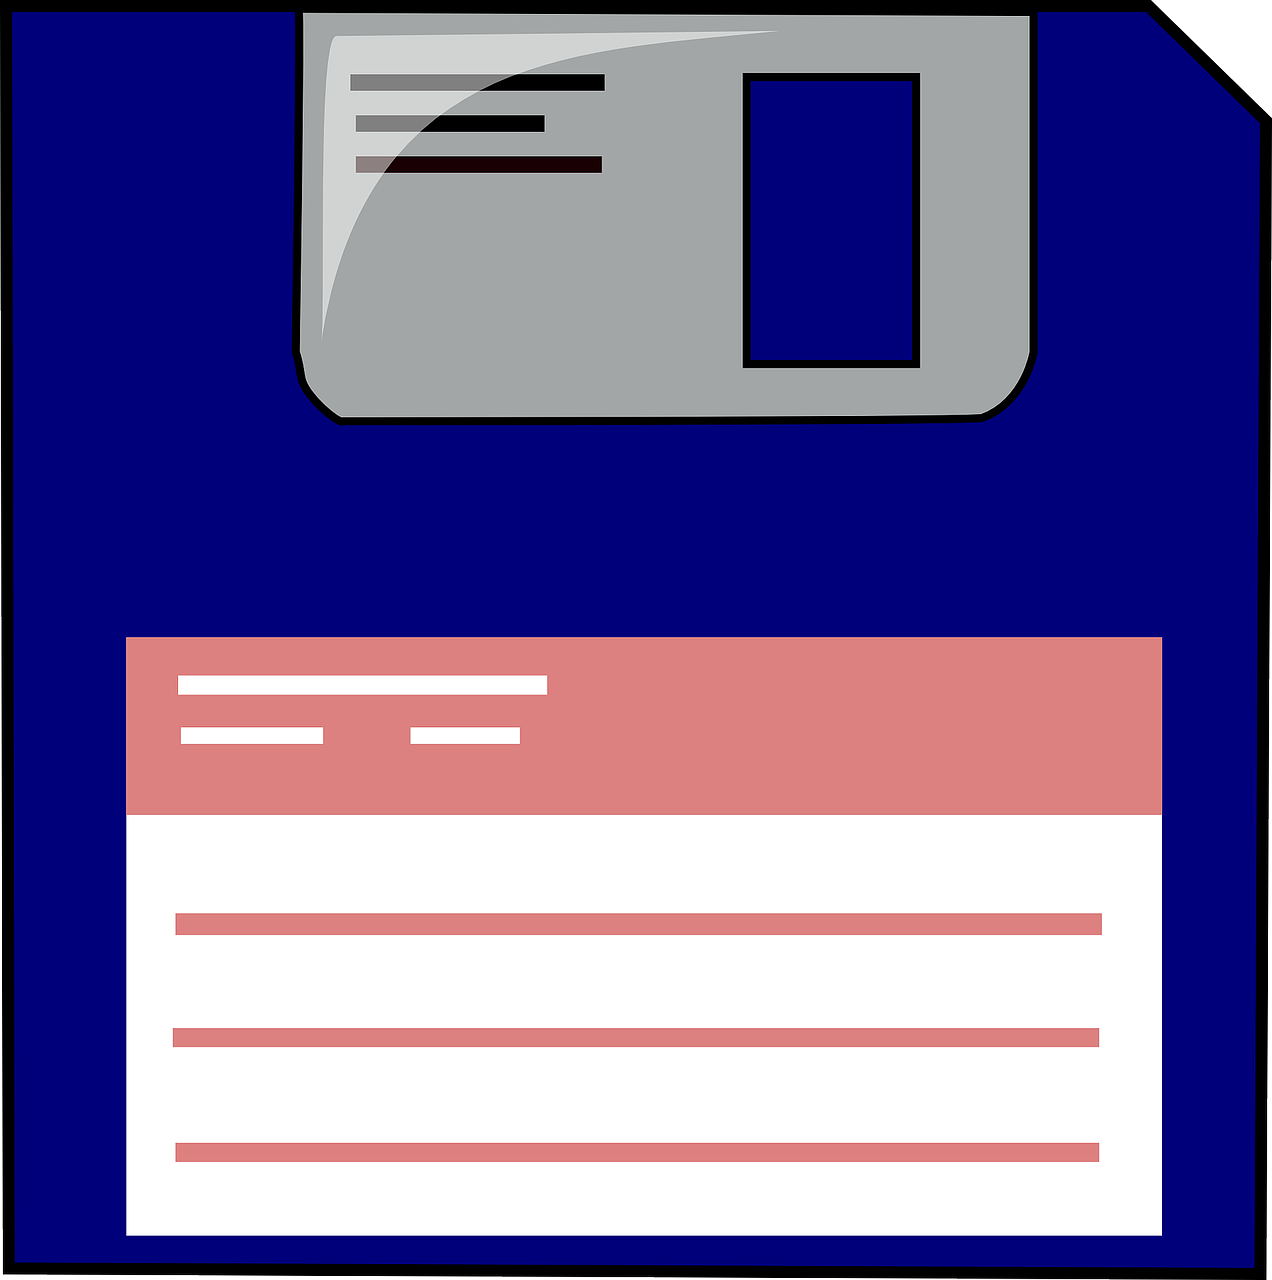 floppy disc,data storage,label,information backup,software,hardware,megabyte,formatted,archiving,free vector graphics,free pictures, free photos, free images, royalty free, free illustrations, public domain